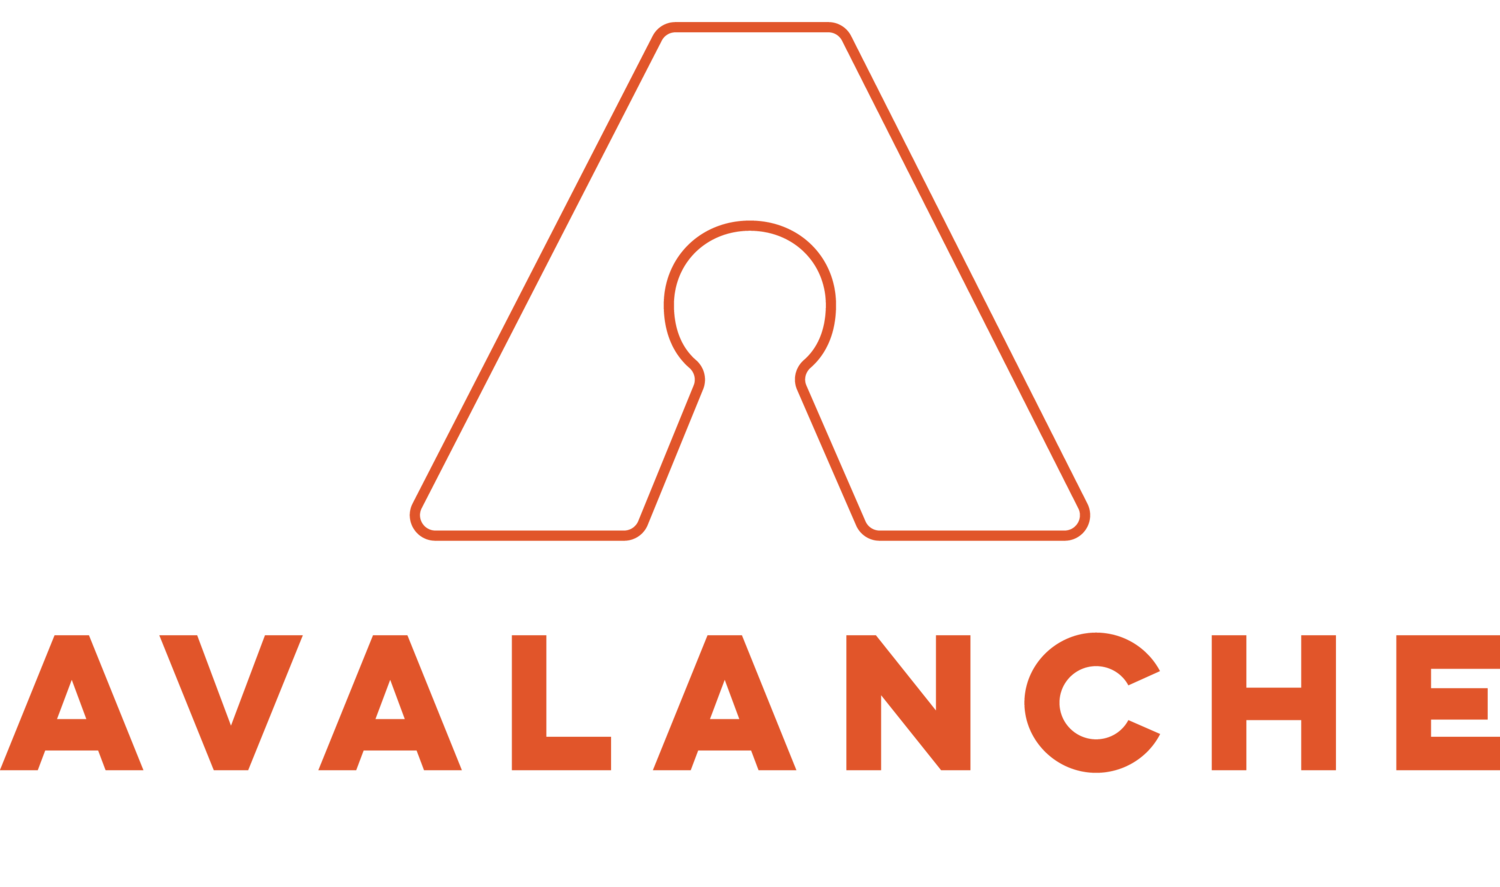 Avalanche Escape Rooms